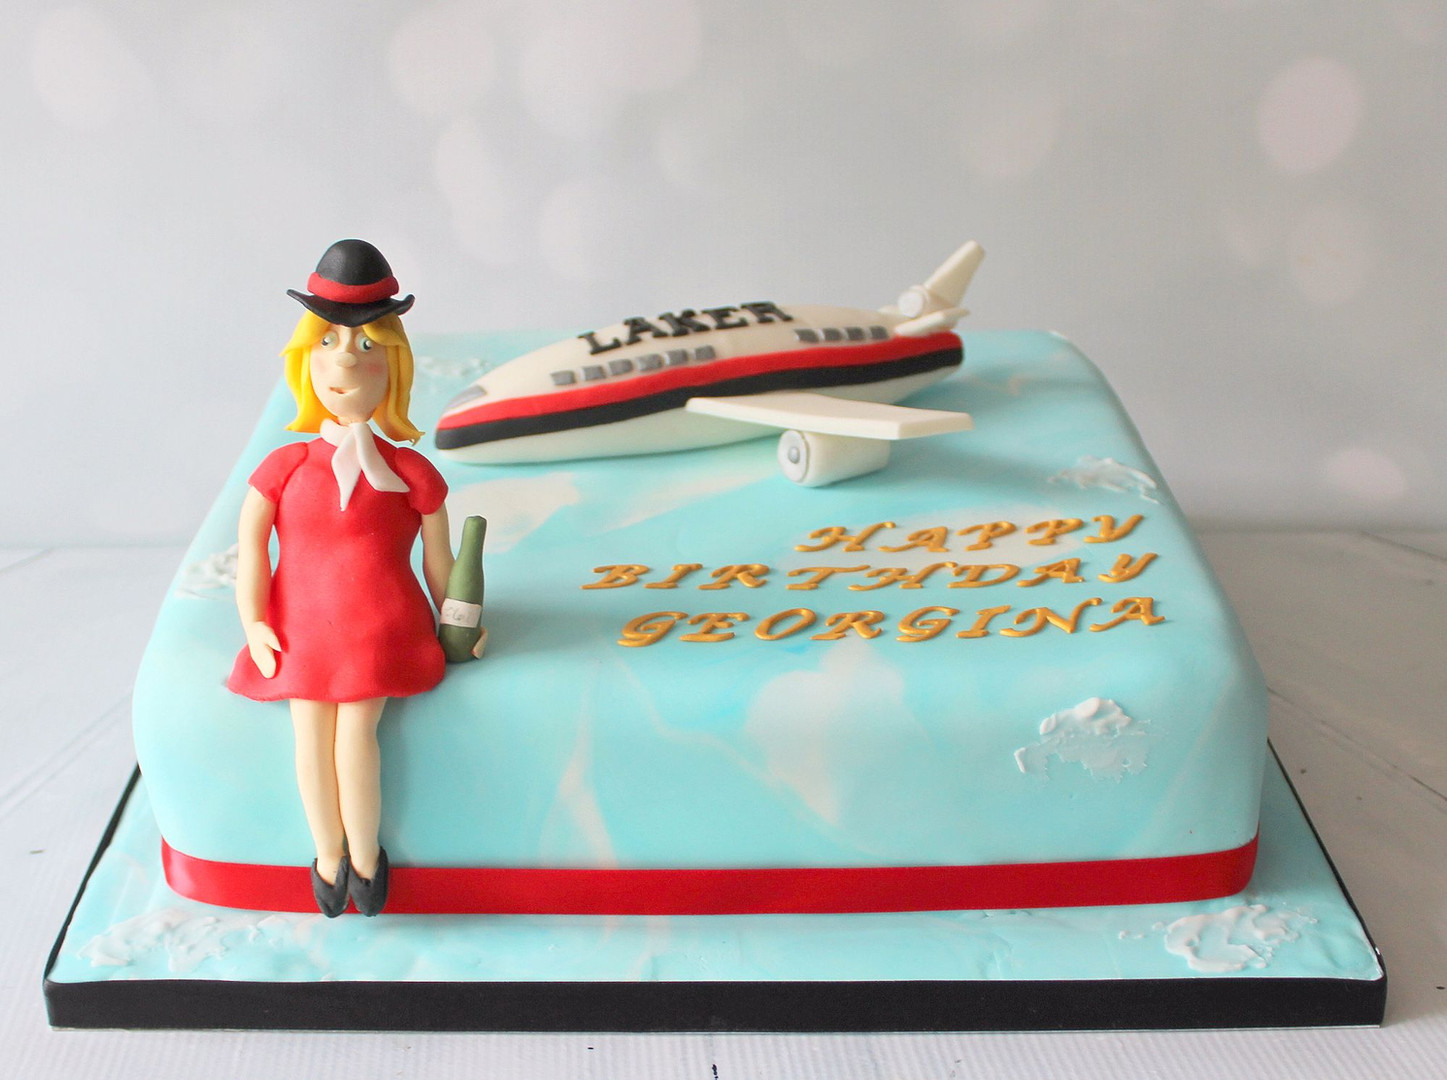 Air Hostess cake